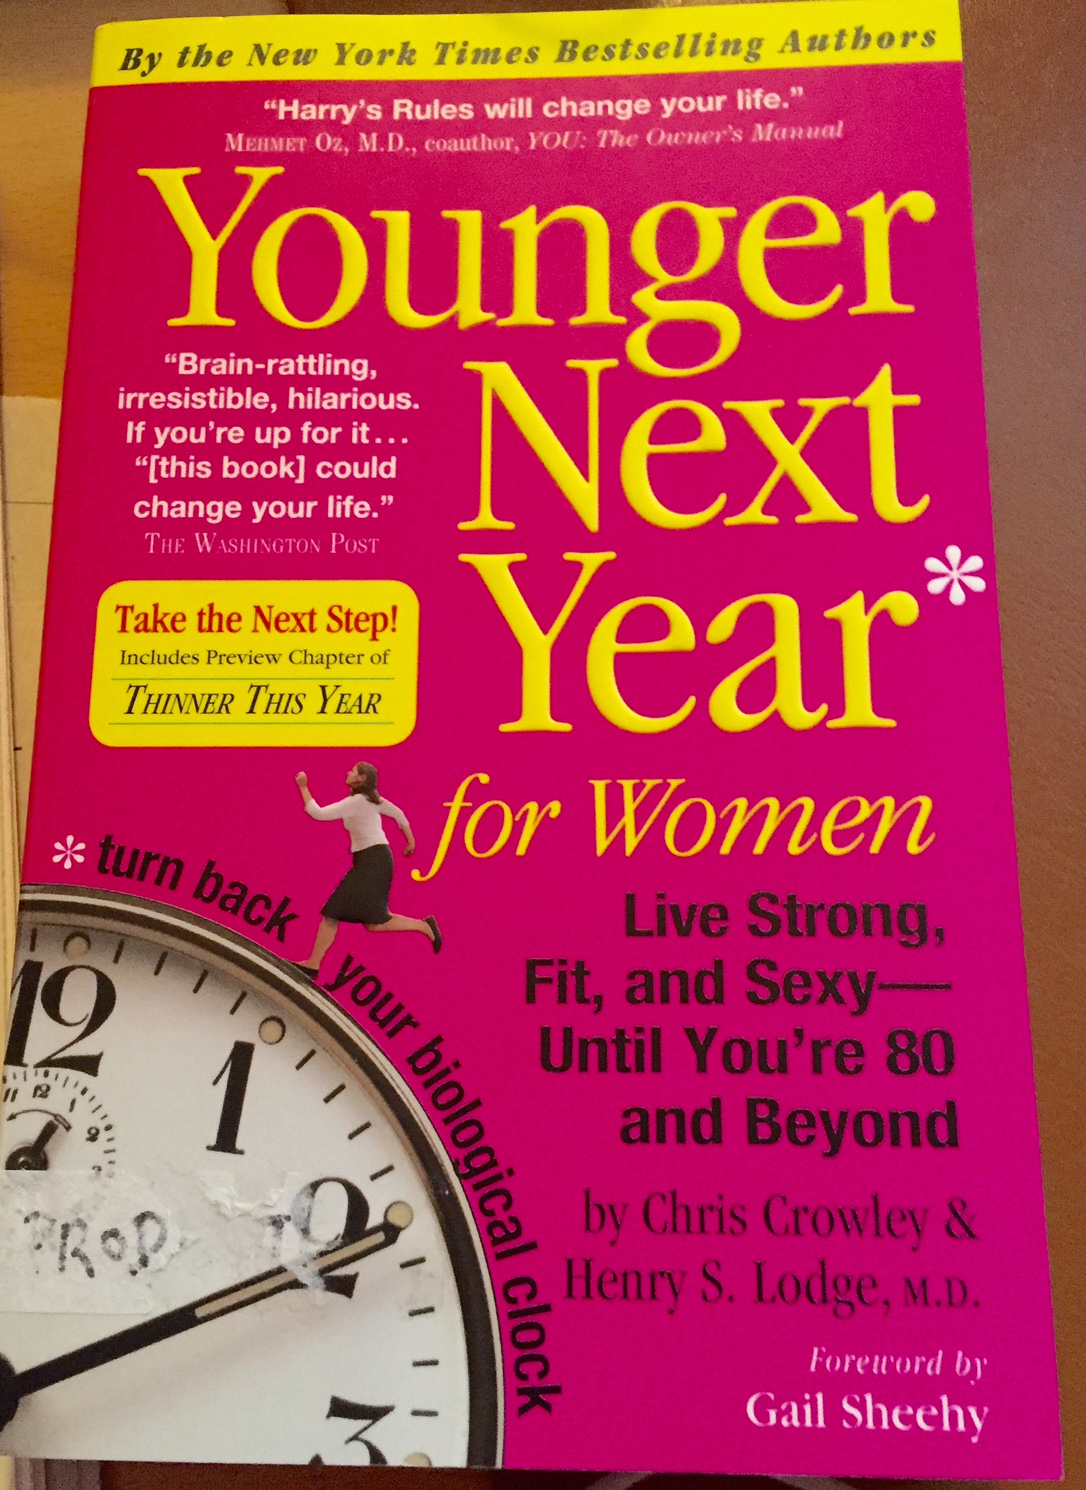 Younger Next Year for Women, exercise, boomer women, boomer wellness